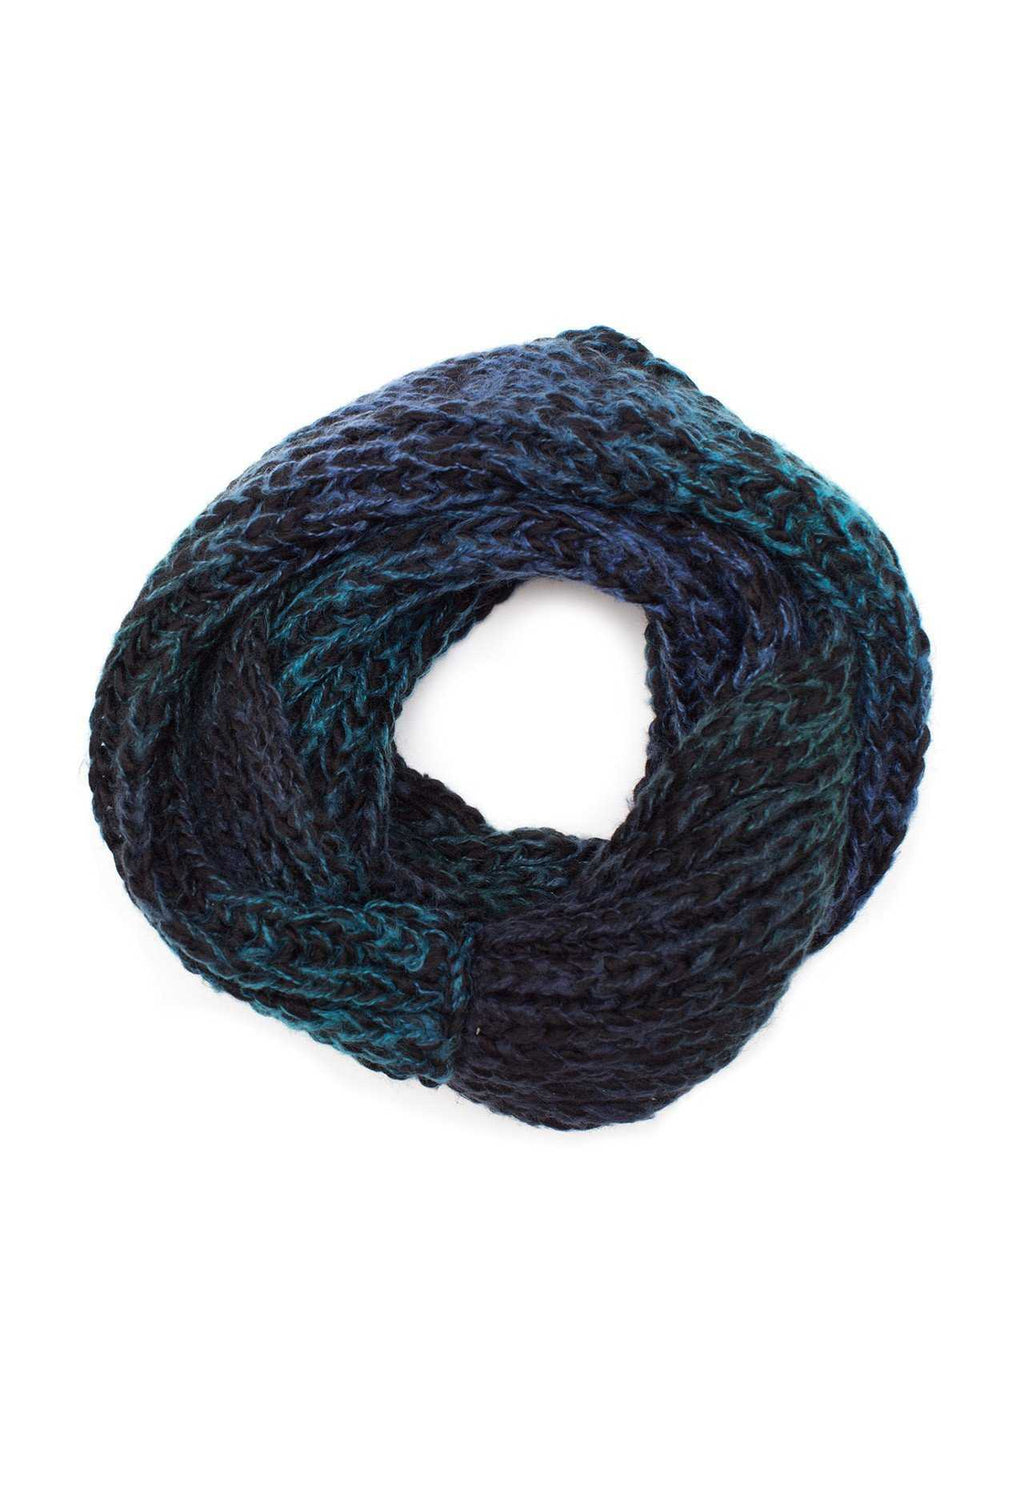 Accessories - Enchanted Embrace Knit Scarf - Black